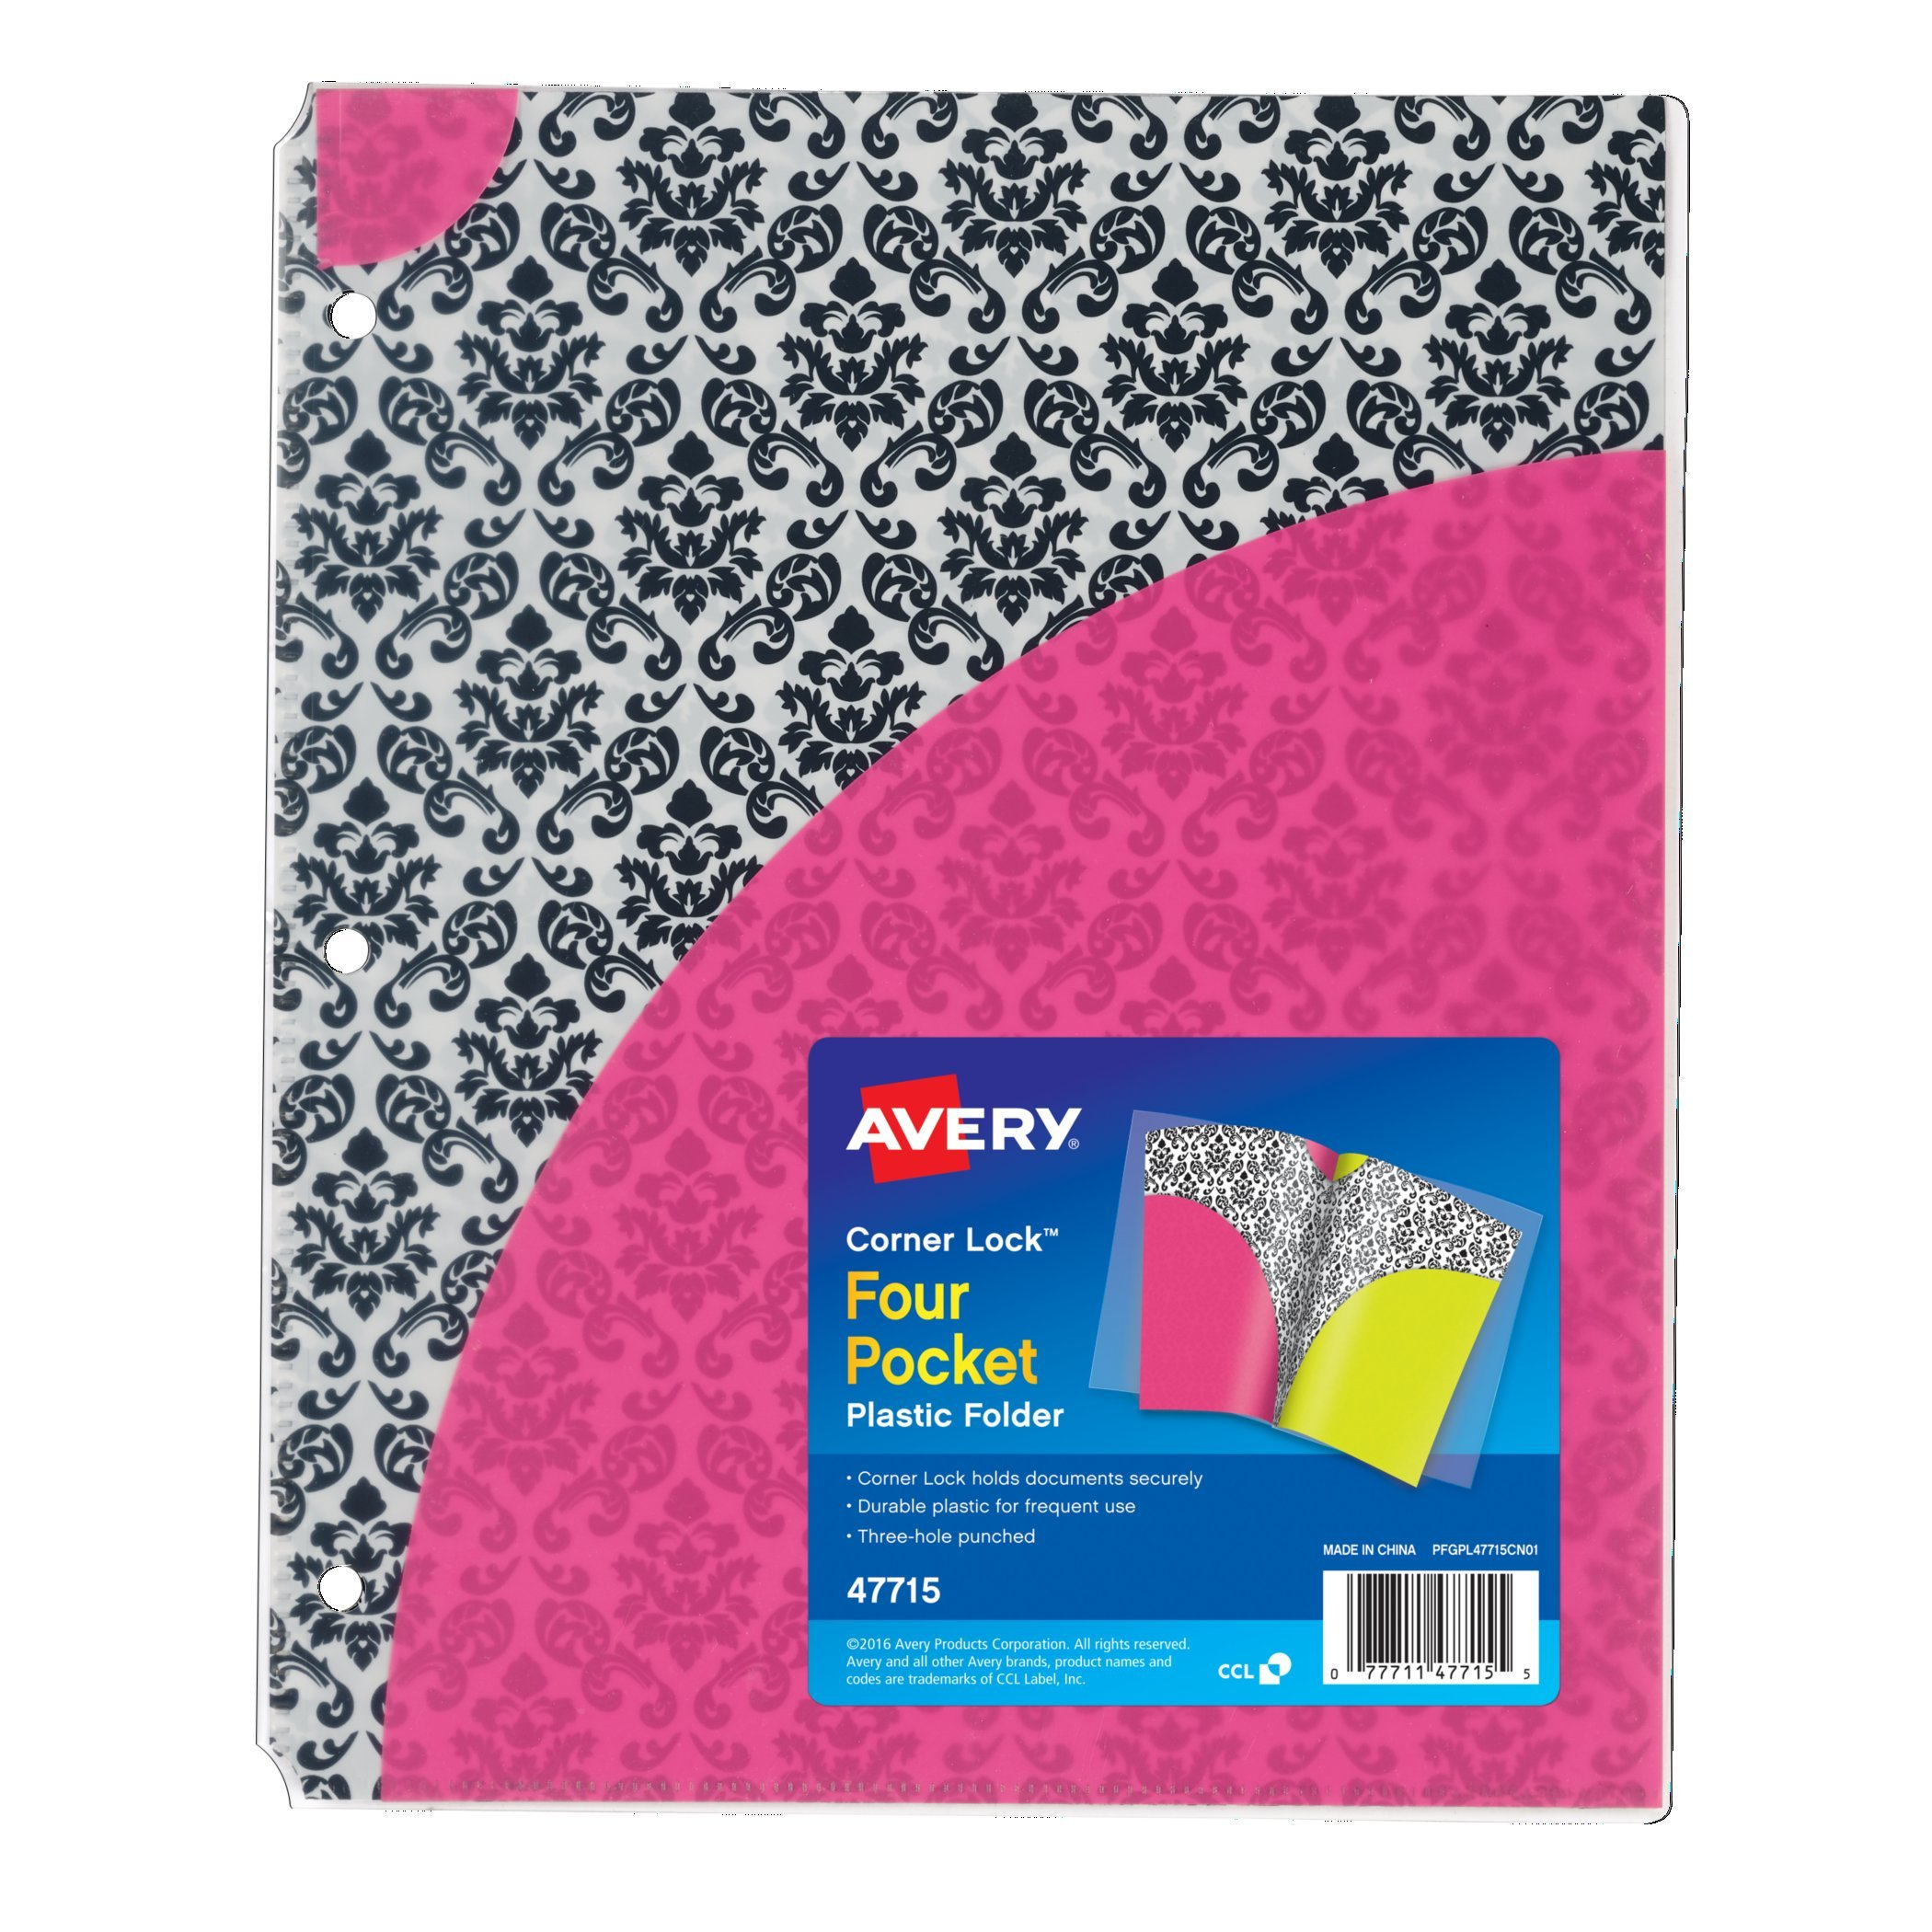 Avery Corner Lock Four-Pocket Plastic Folder 47715, Damask, 1 Folder